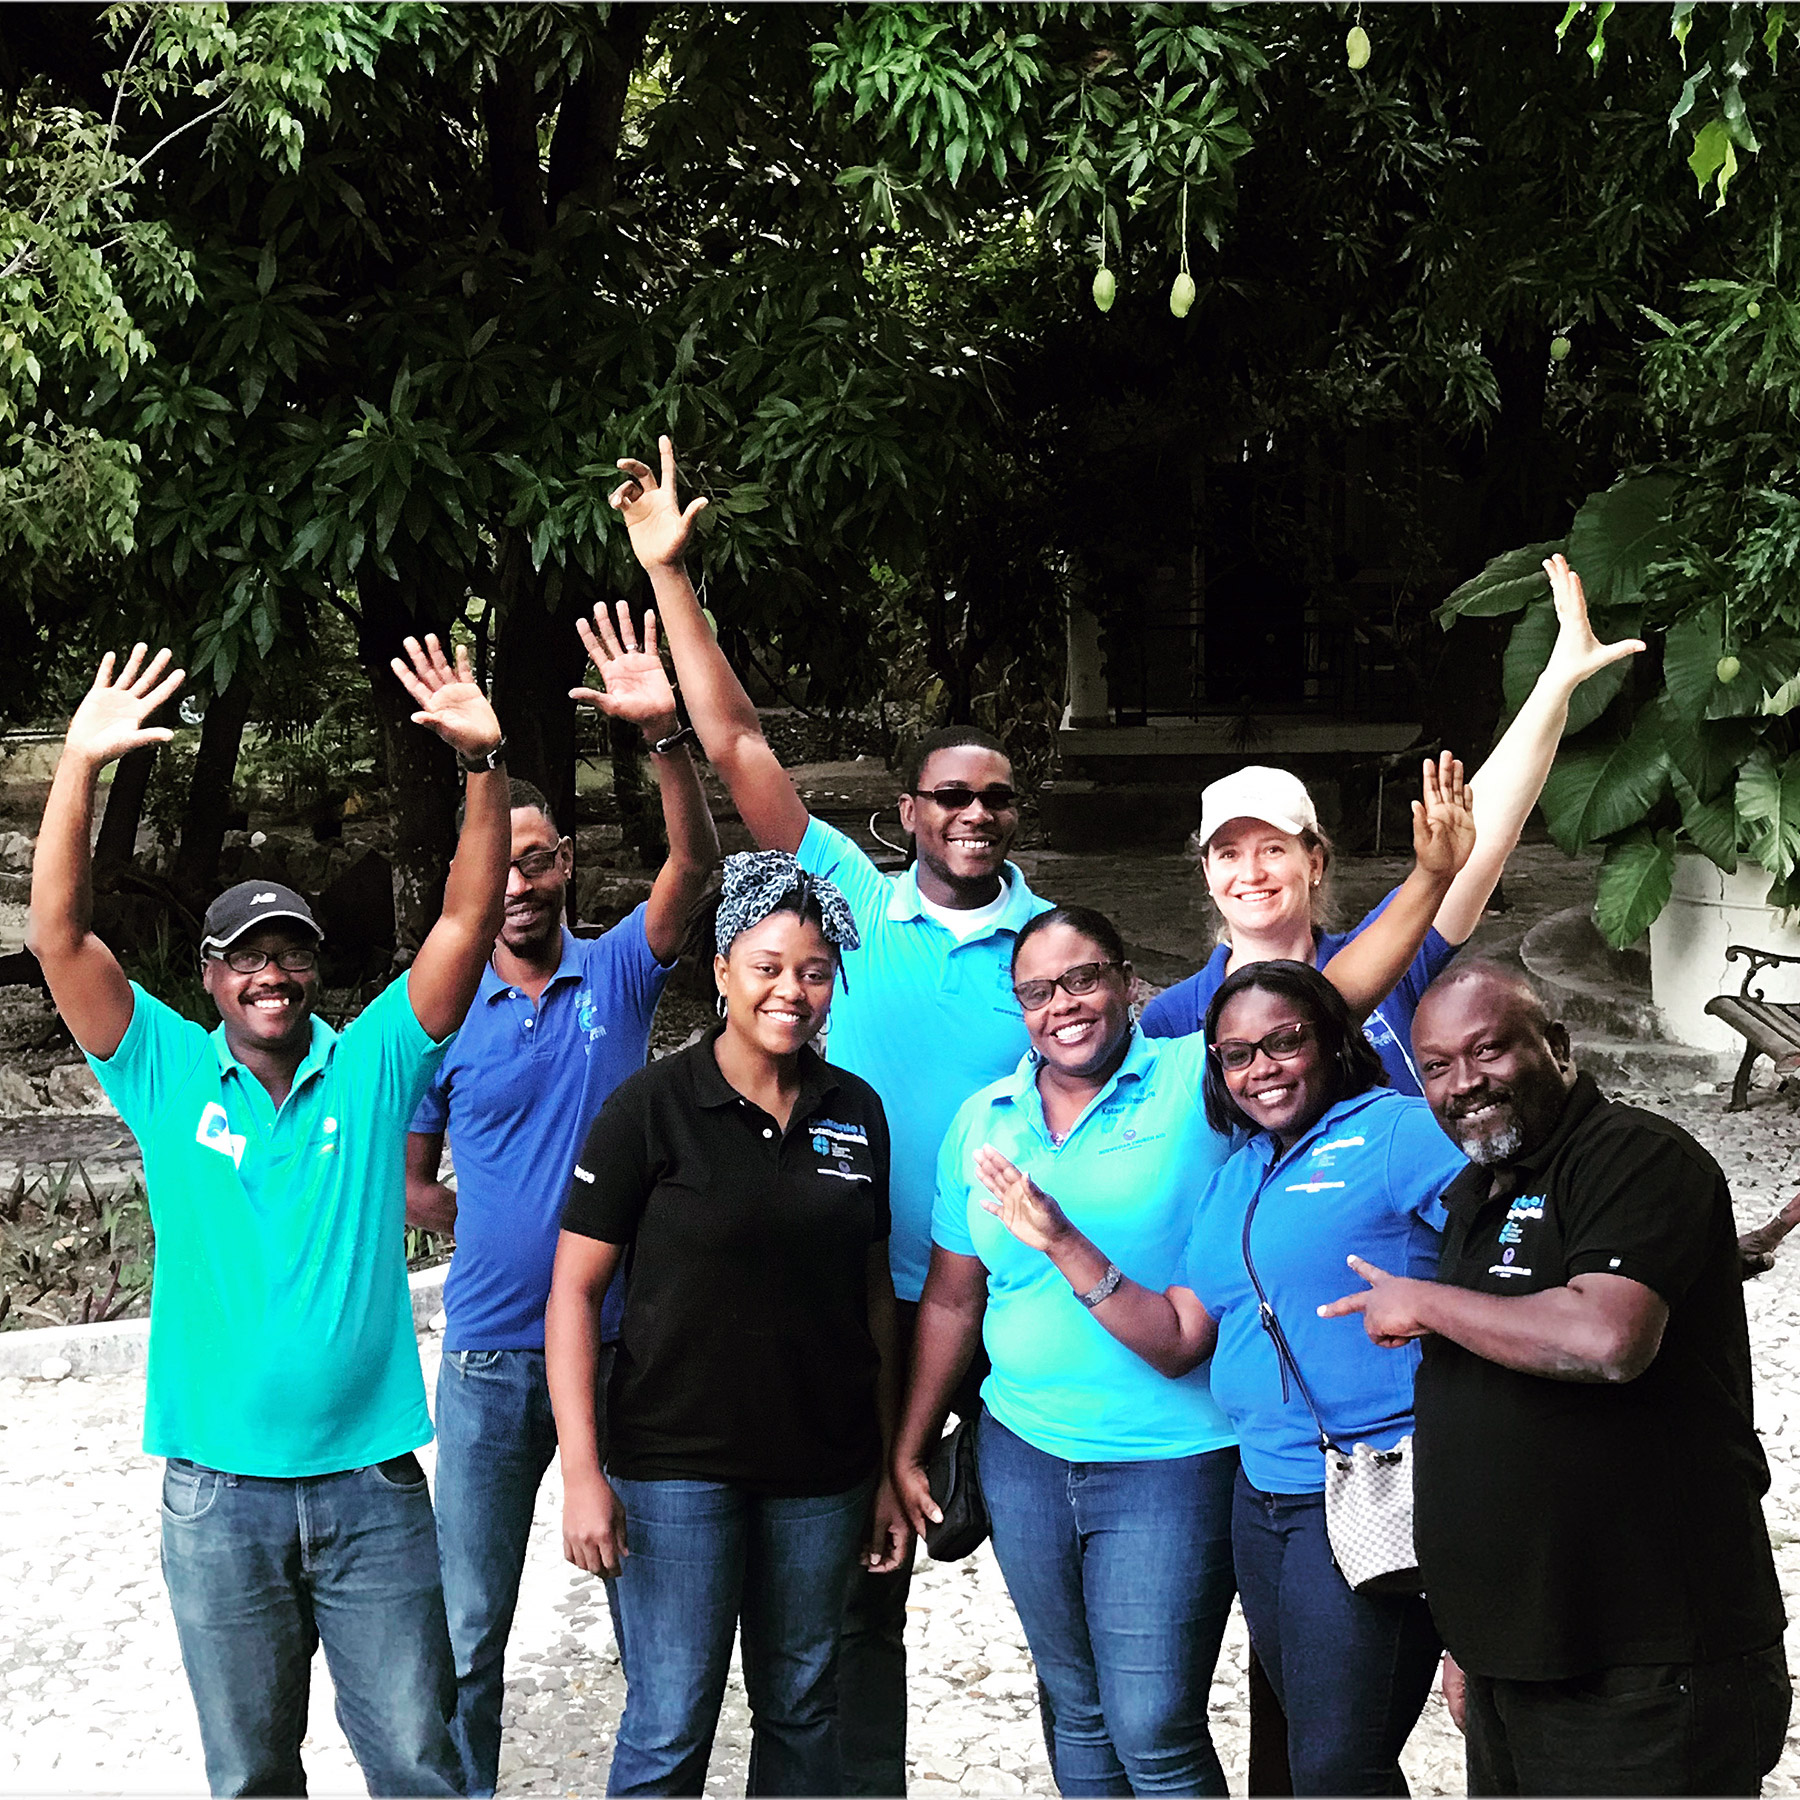 LWF/NCA/DKH country representative Starry Sprenkle (back row, right) with the team which is promoting the WASH campaign for schools in Haiti